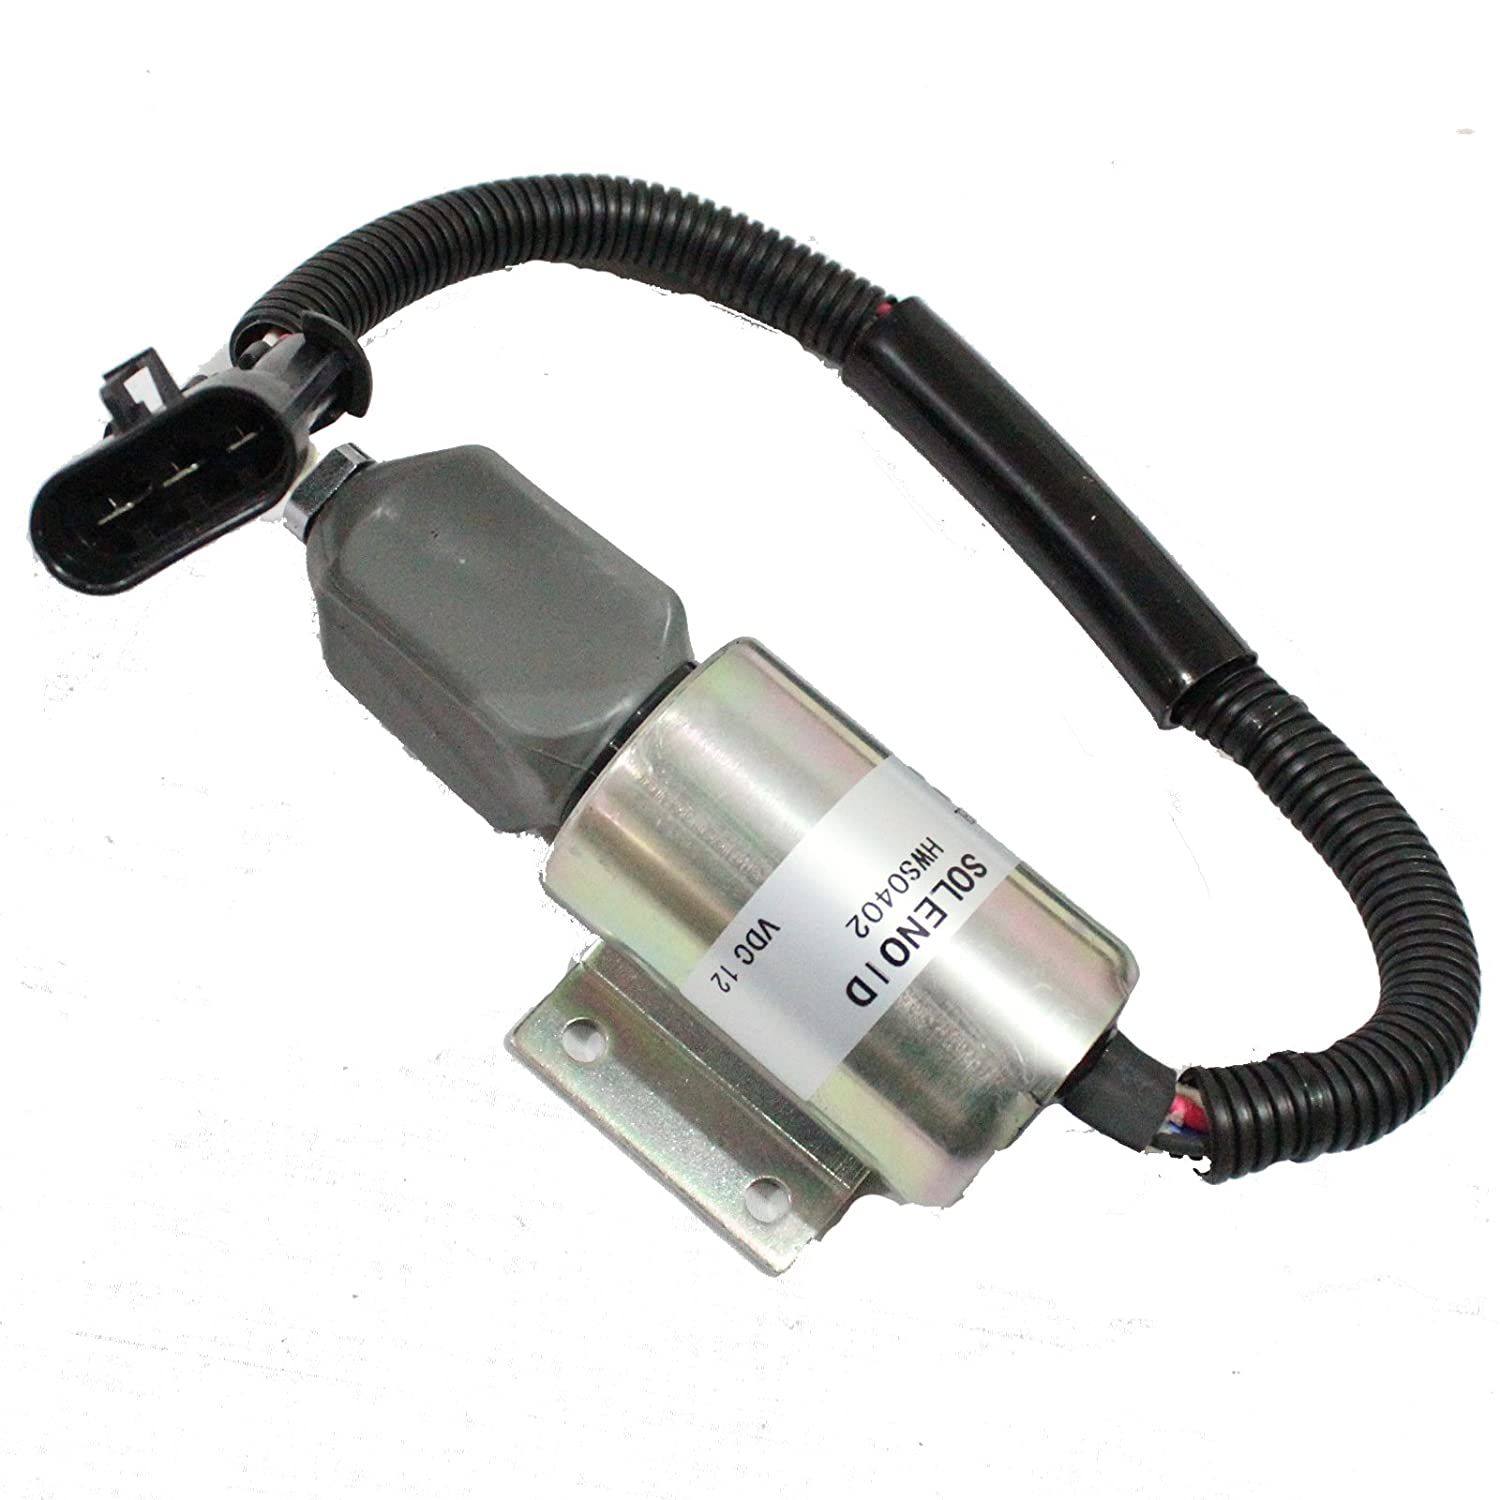 Holdwell Fuel Solenoid 59009134 SA-4532-12 2003ES for Ingersoll-Rand DD-130 Compactor B5.9-C